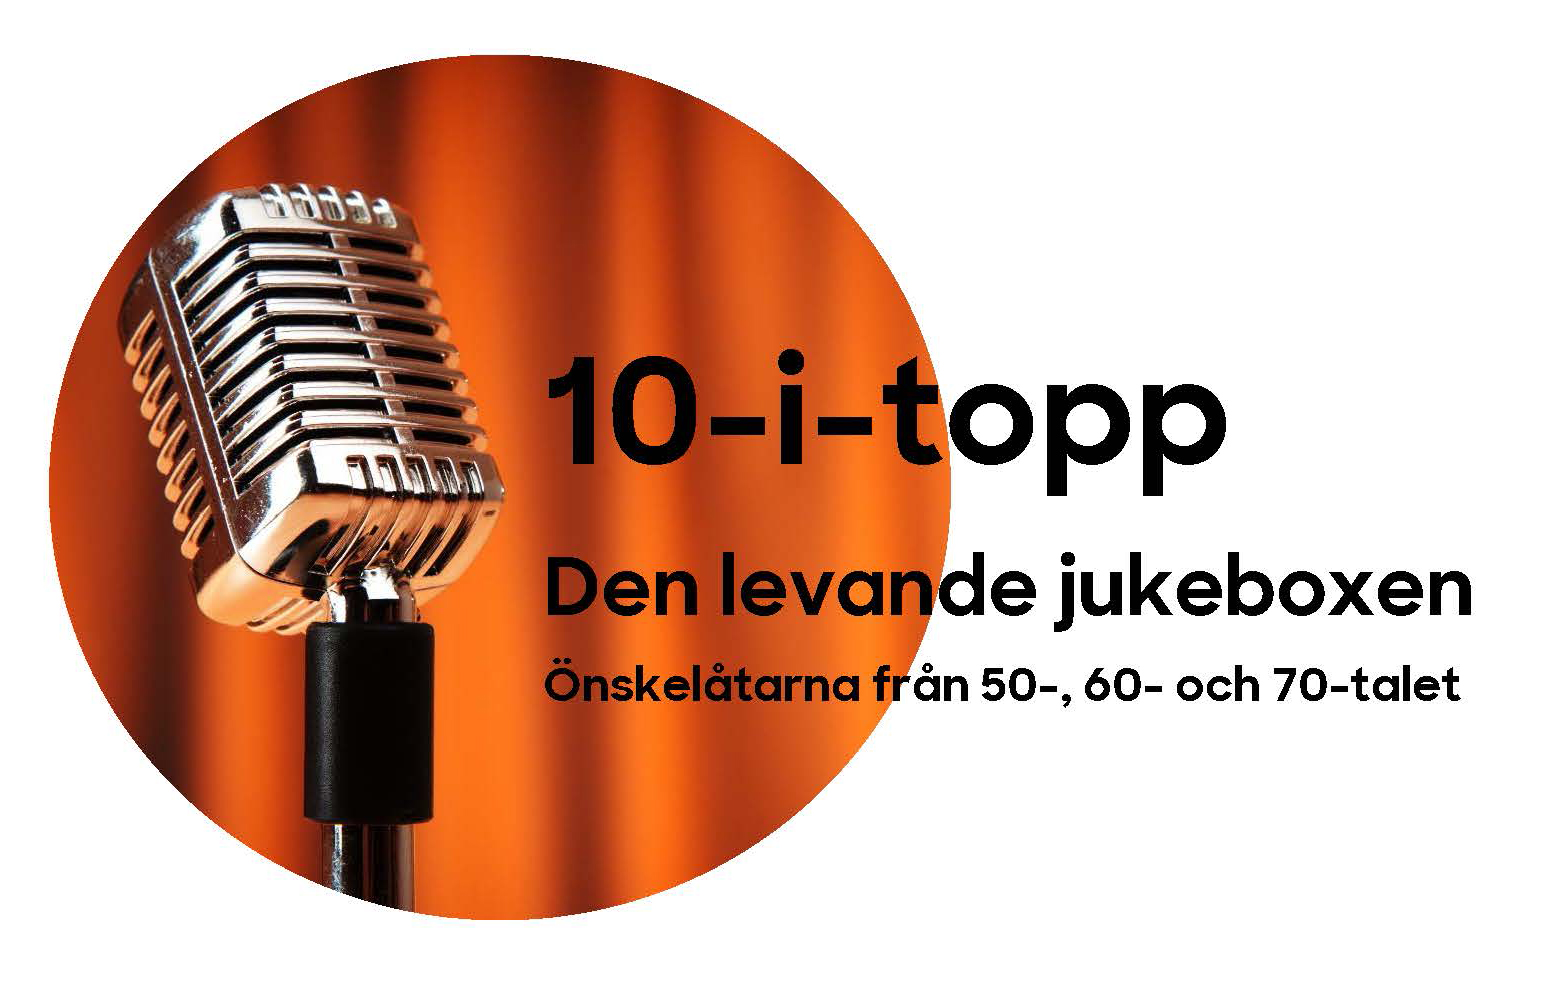 10-i-top - Den levande jukebox